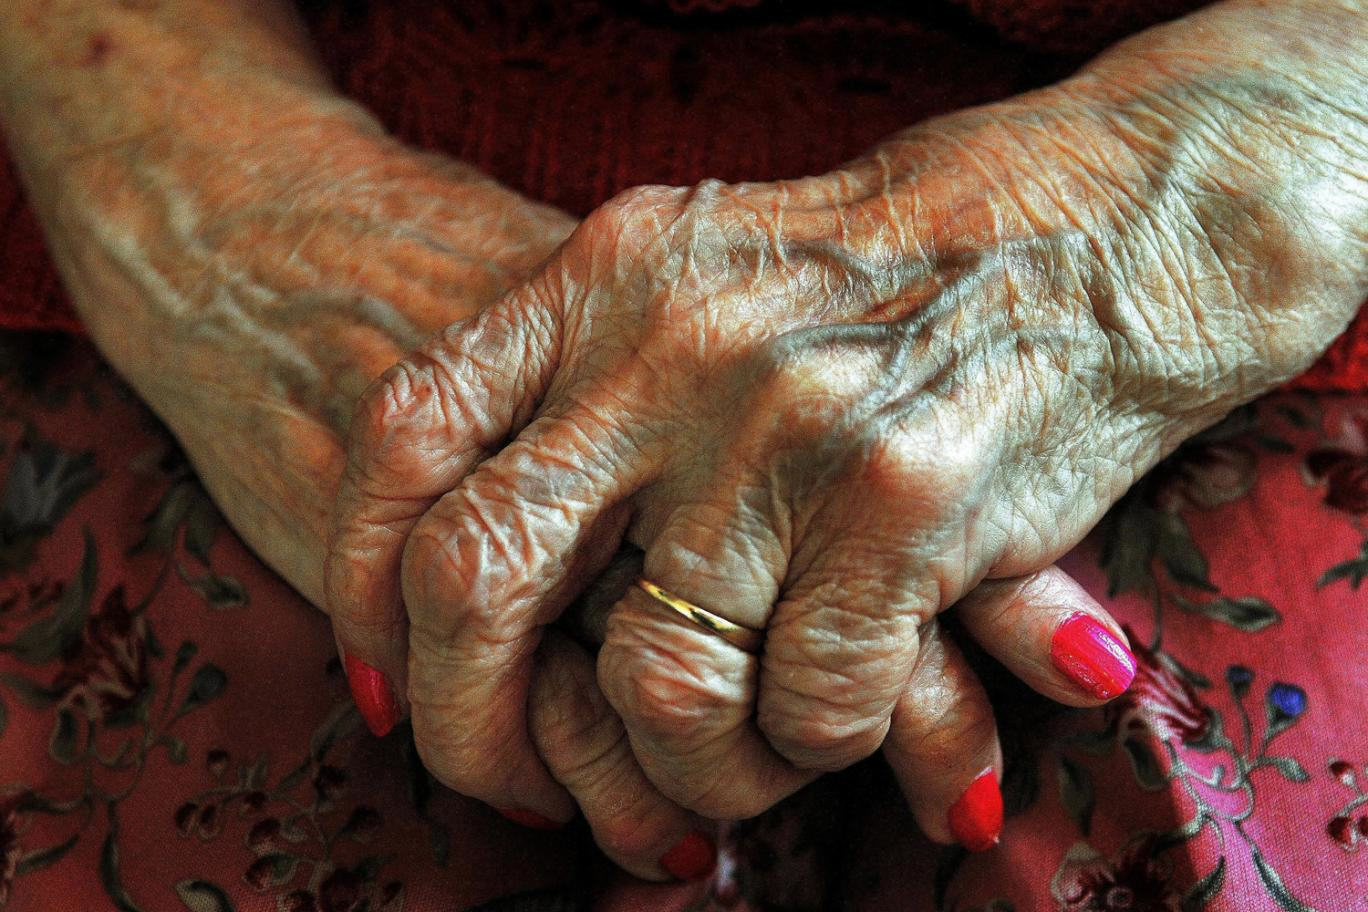 pensioner4 Essex Council Charging Elderly People £26 When They Fall And Need Help